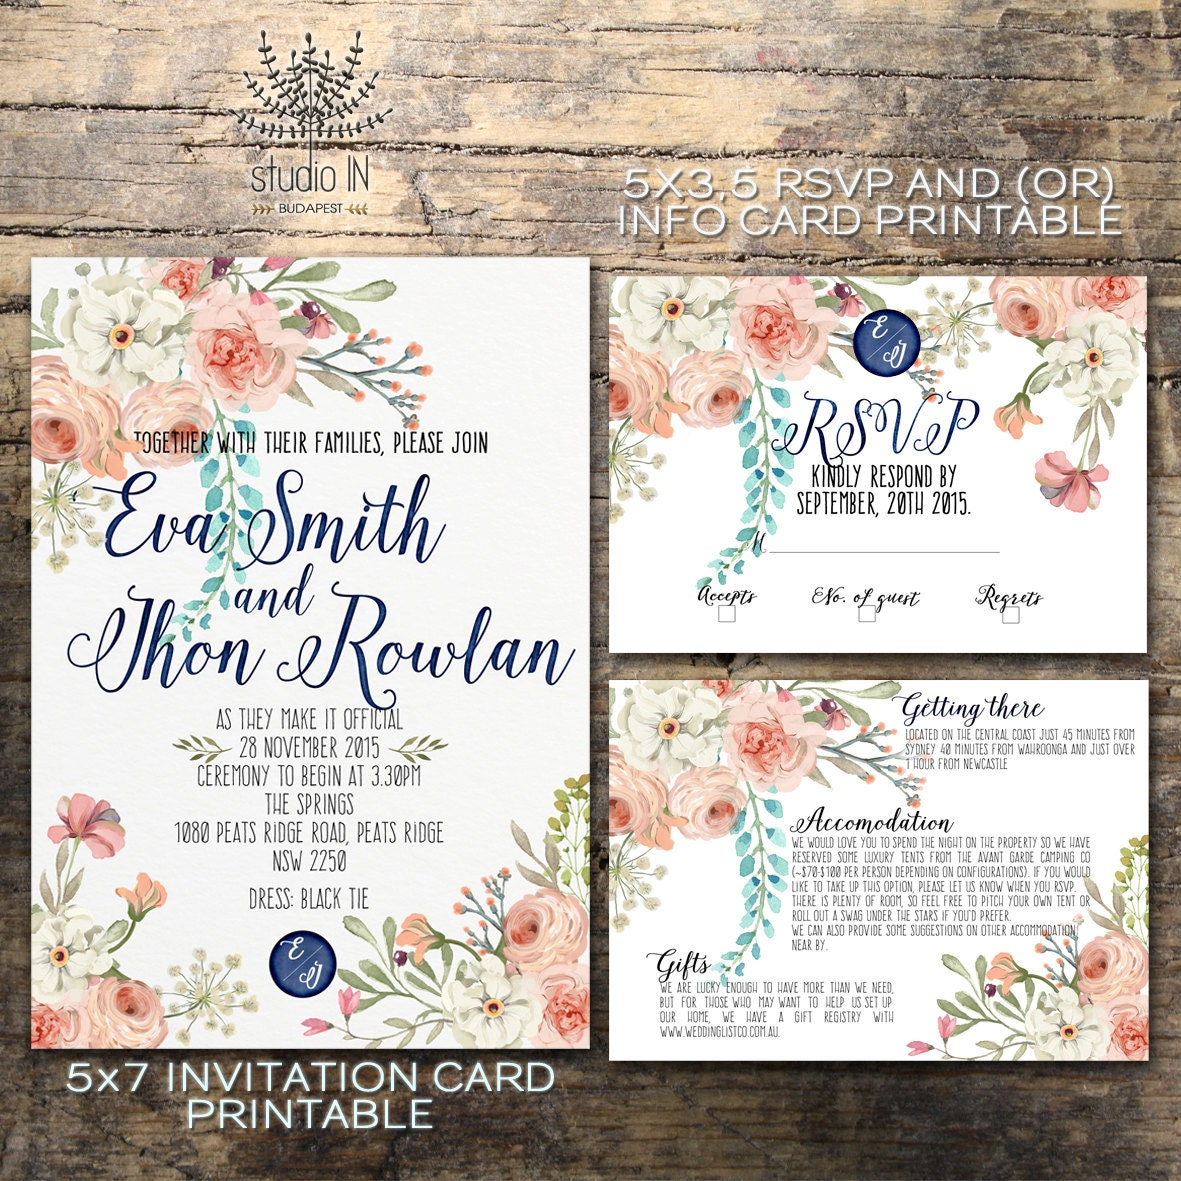 Adaptable image within etsy printable invitations